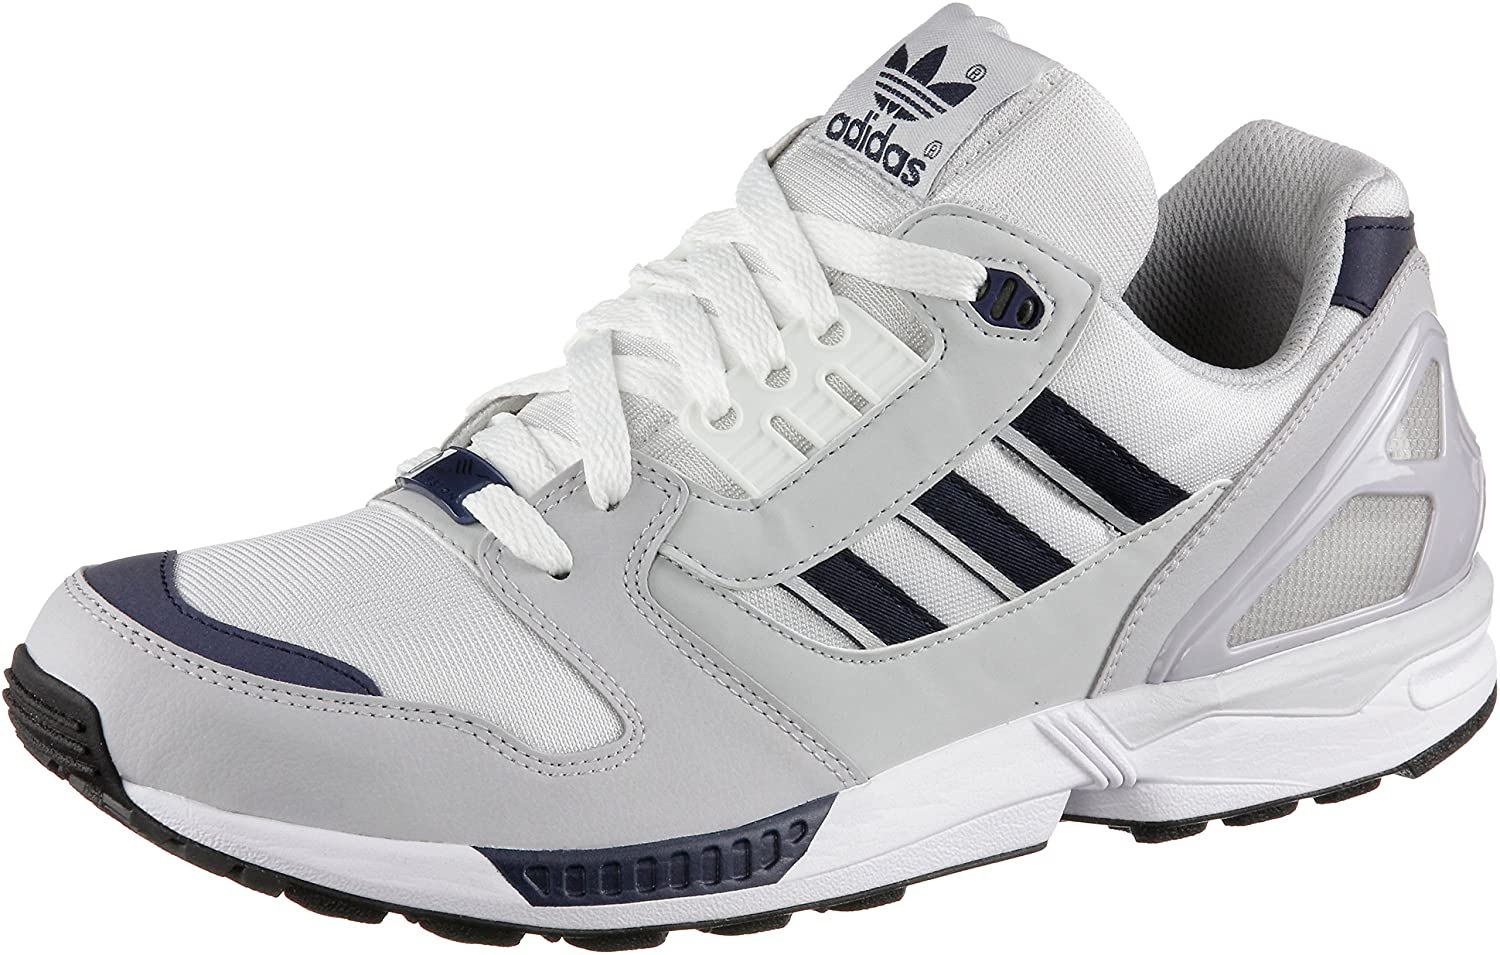 info for dae13 c06cc Adidas ZX 800 M19666 Trainers Shoes (9 US): Amazon.co.uk ...